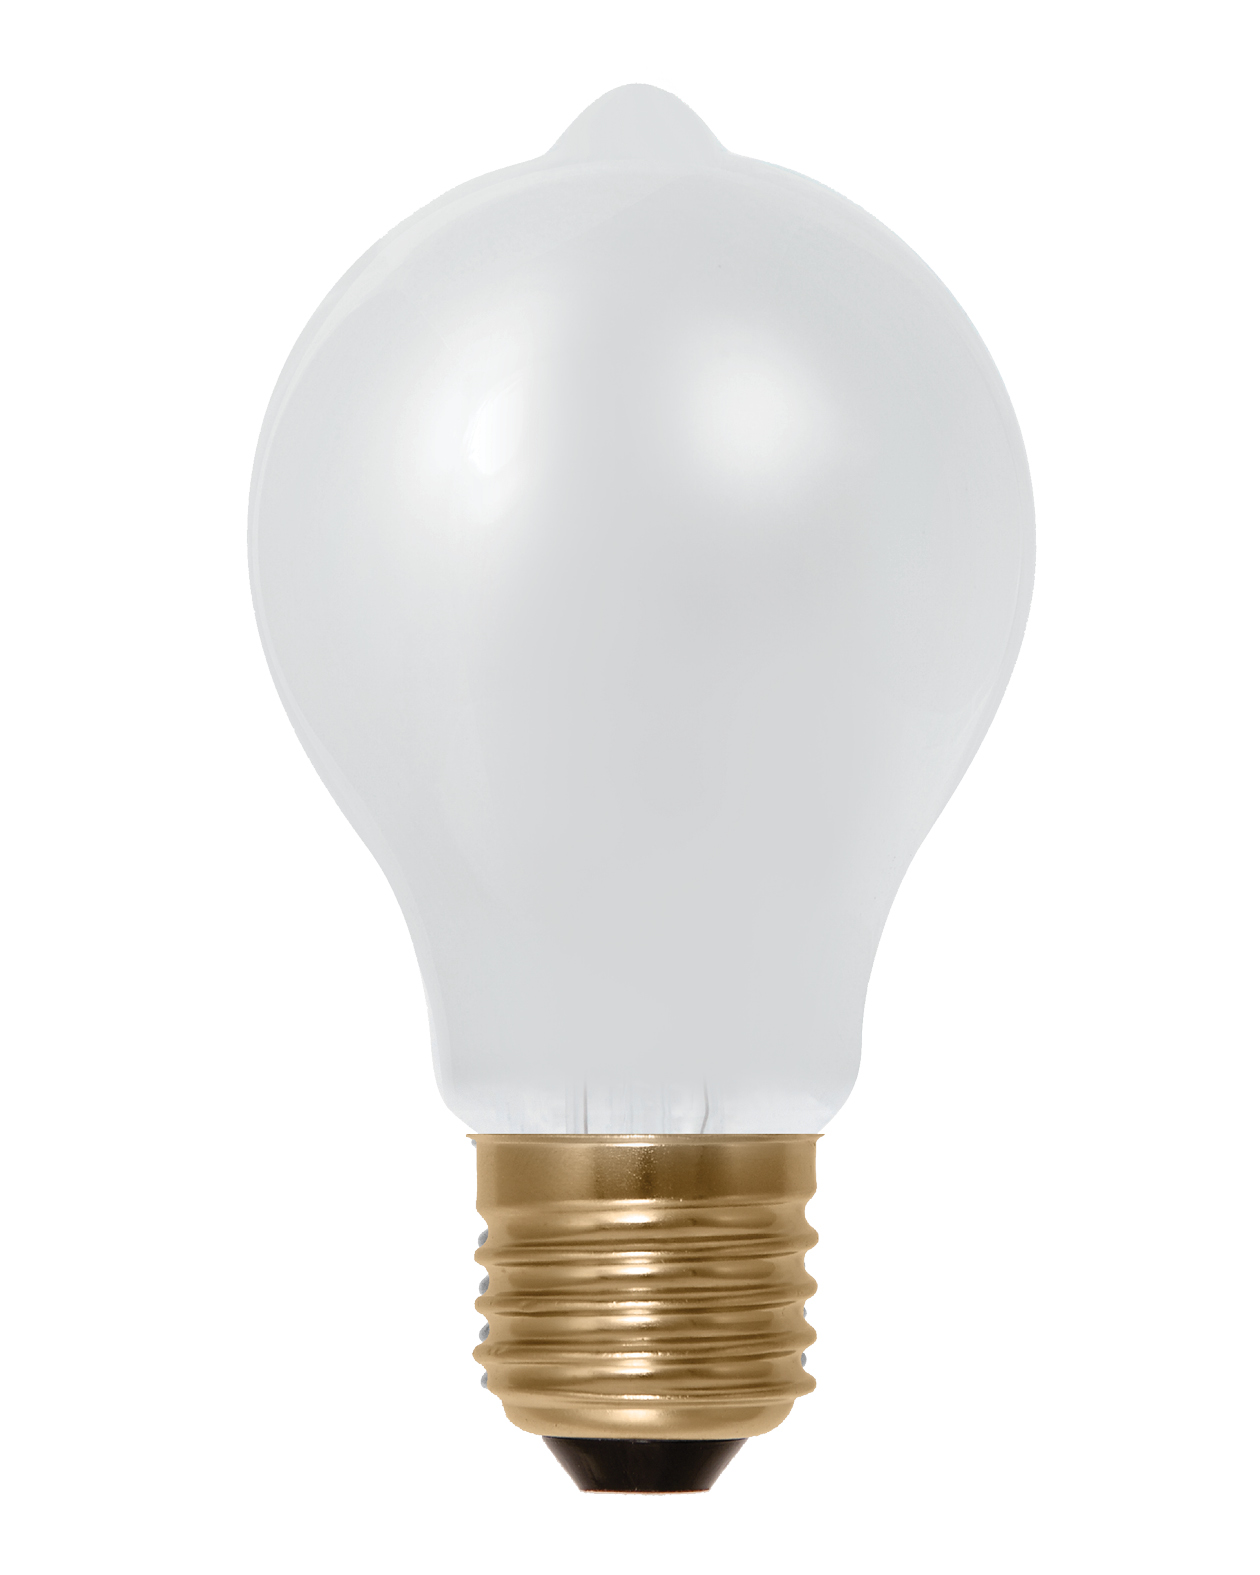 segula led lamp 6 w 40 w warmwit 230 v filament retro